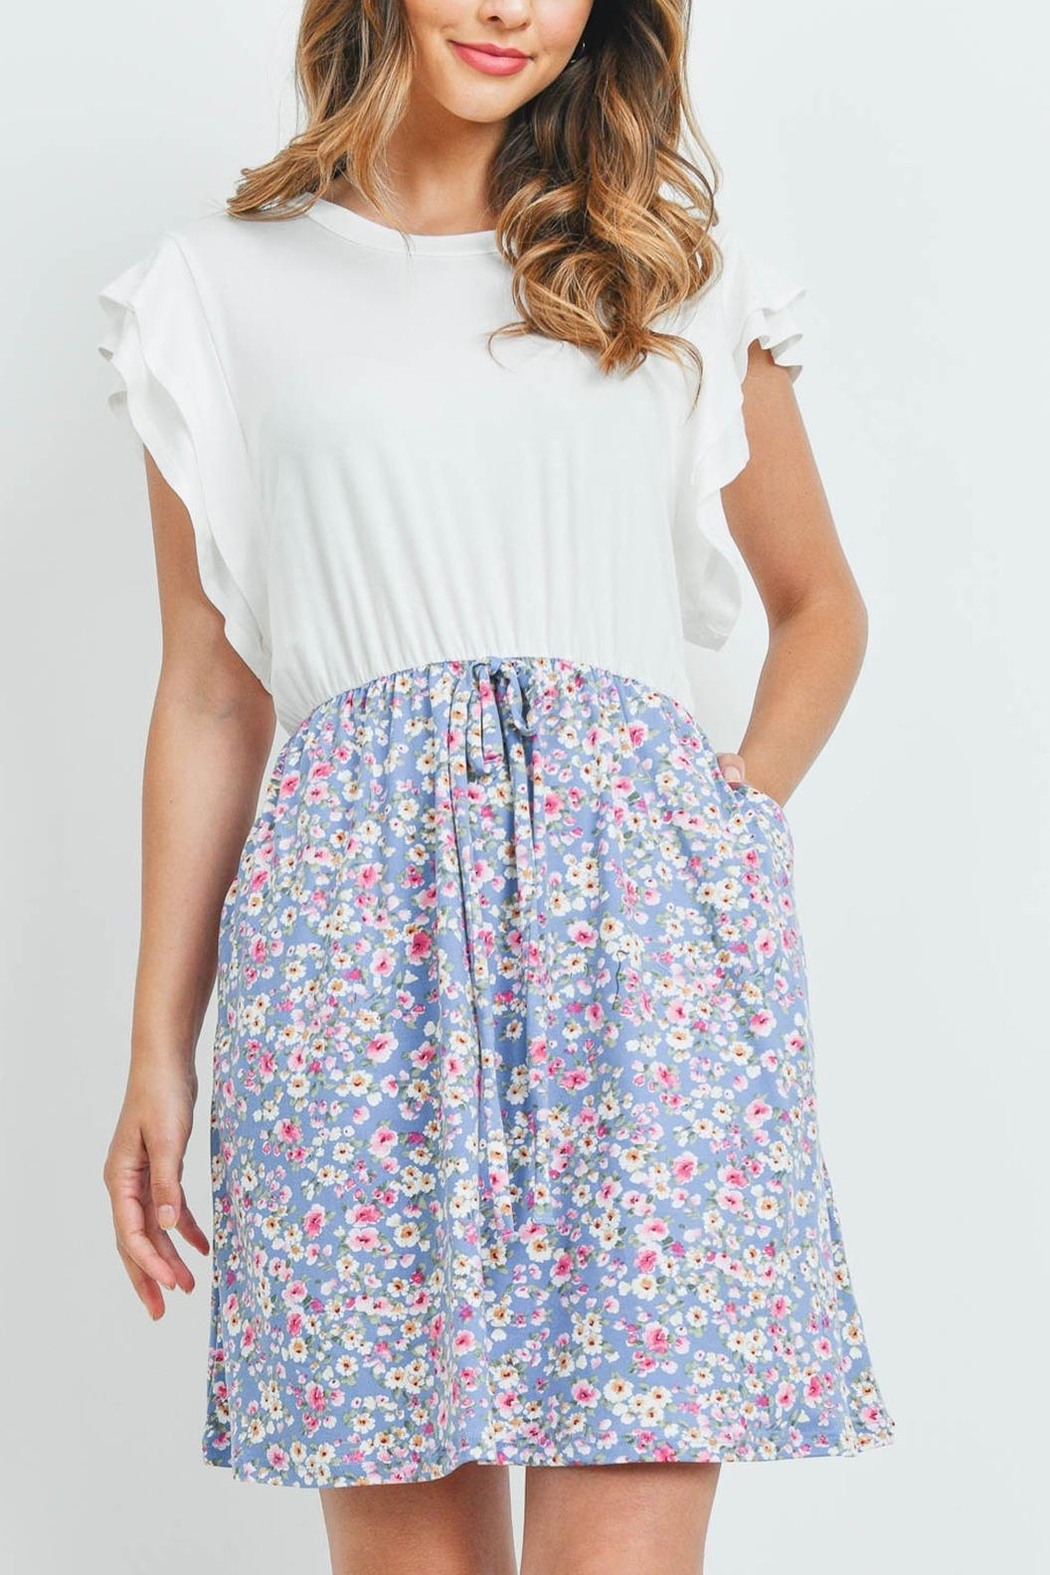 Riah Fashion Cap-Sleeve-Solid-Top-Floral-Contrast-Dress - Main Image